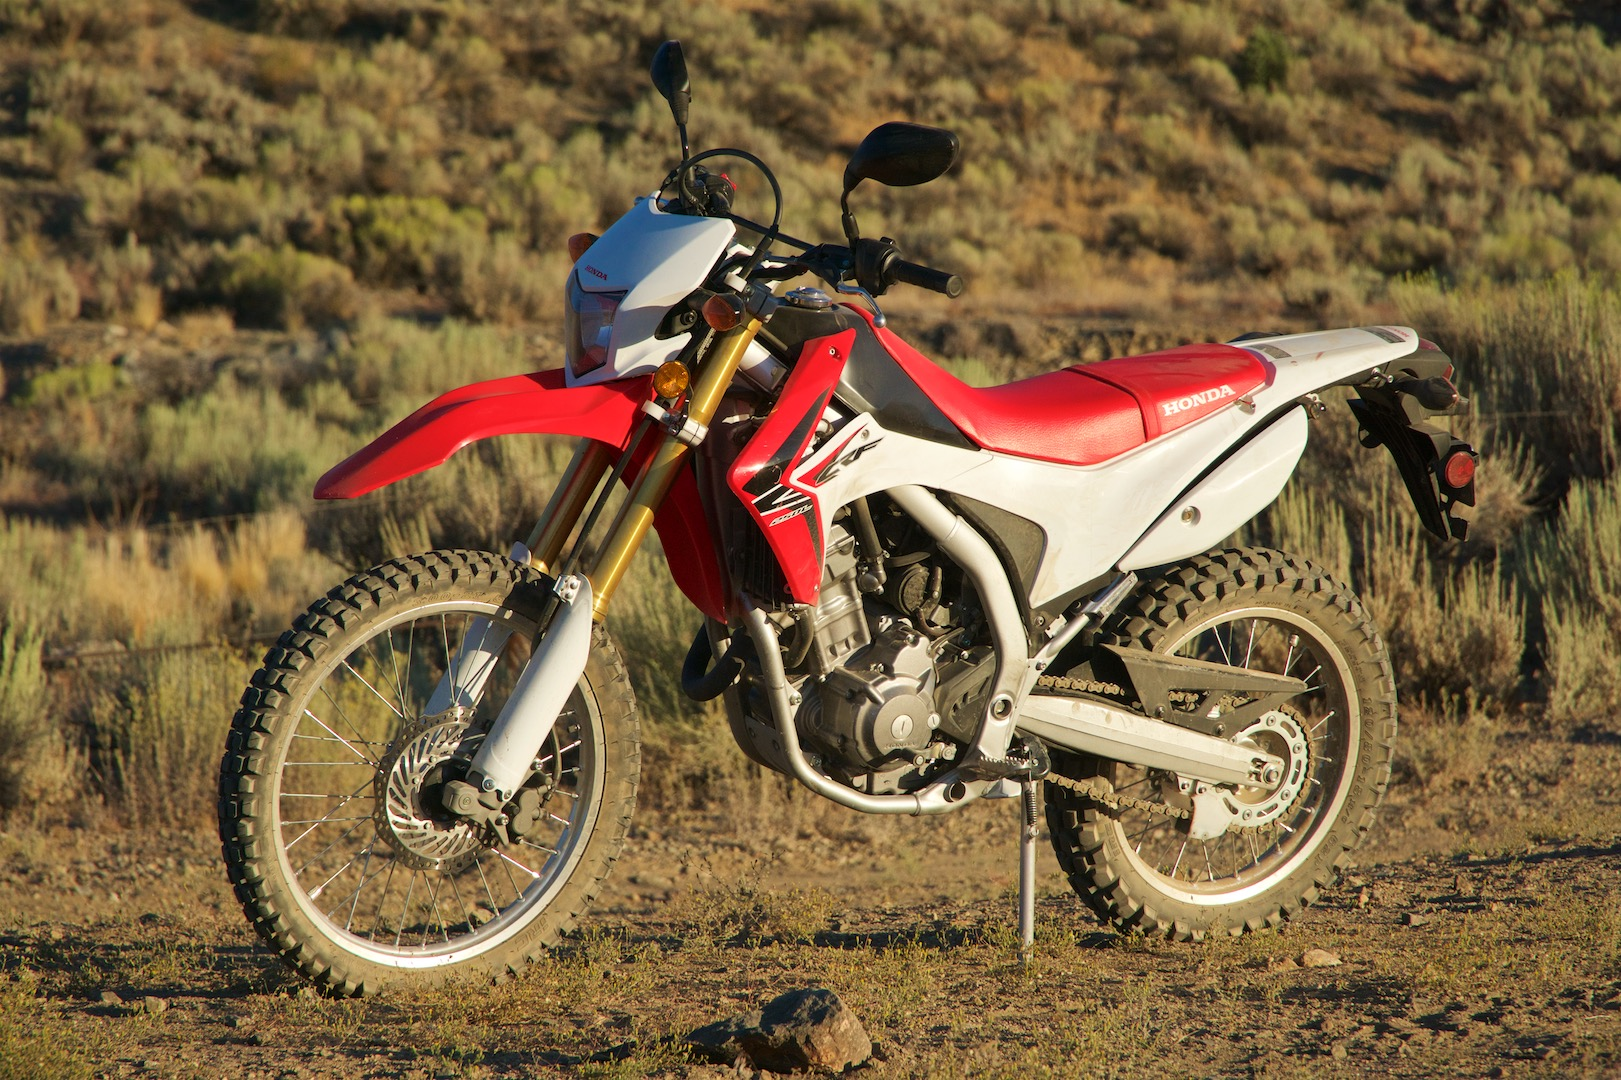 2016 Honda CRF250L Review Test 2 s 2yrh403fk8vd1hz9ro2n46dd wpengine netdna s 2005 crf250r wiring diagram at alyssarenee.co